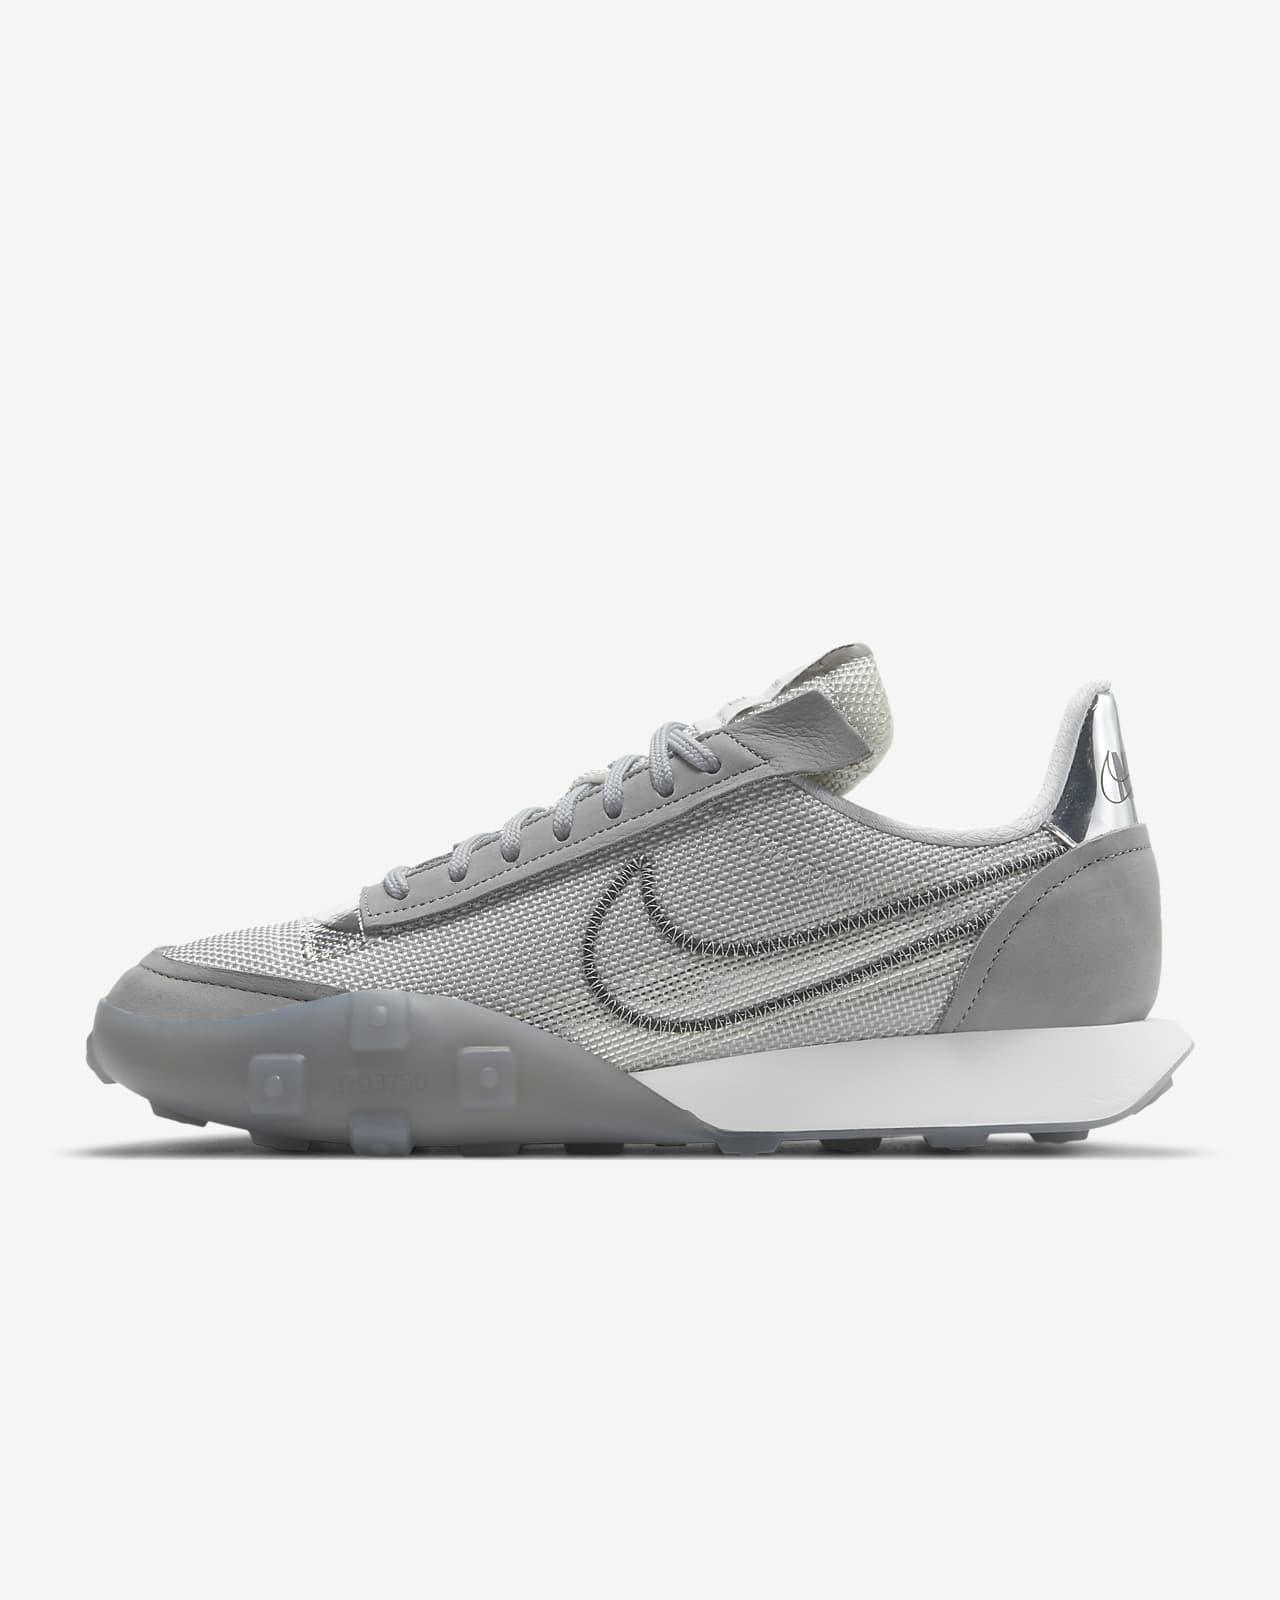 Chaussure Nike Waffle Racer 2X pour Femme